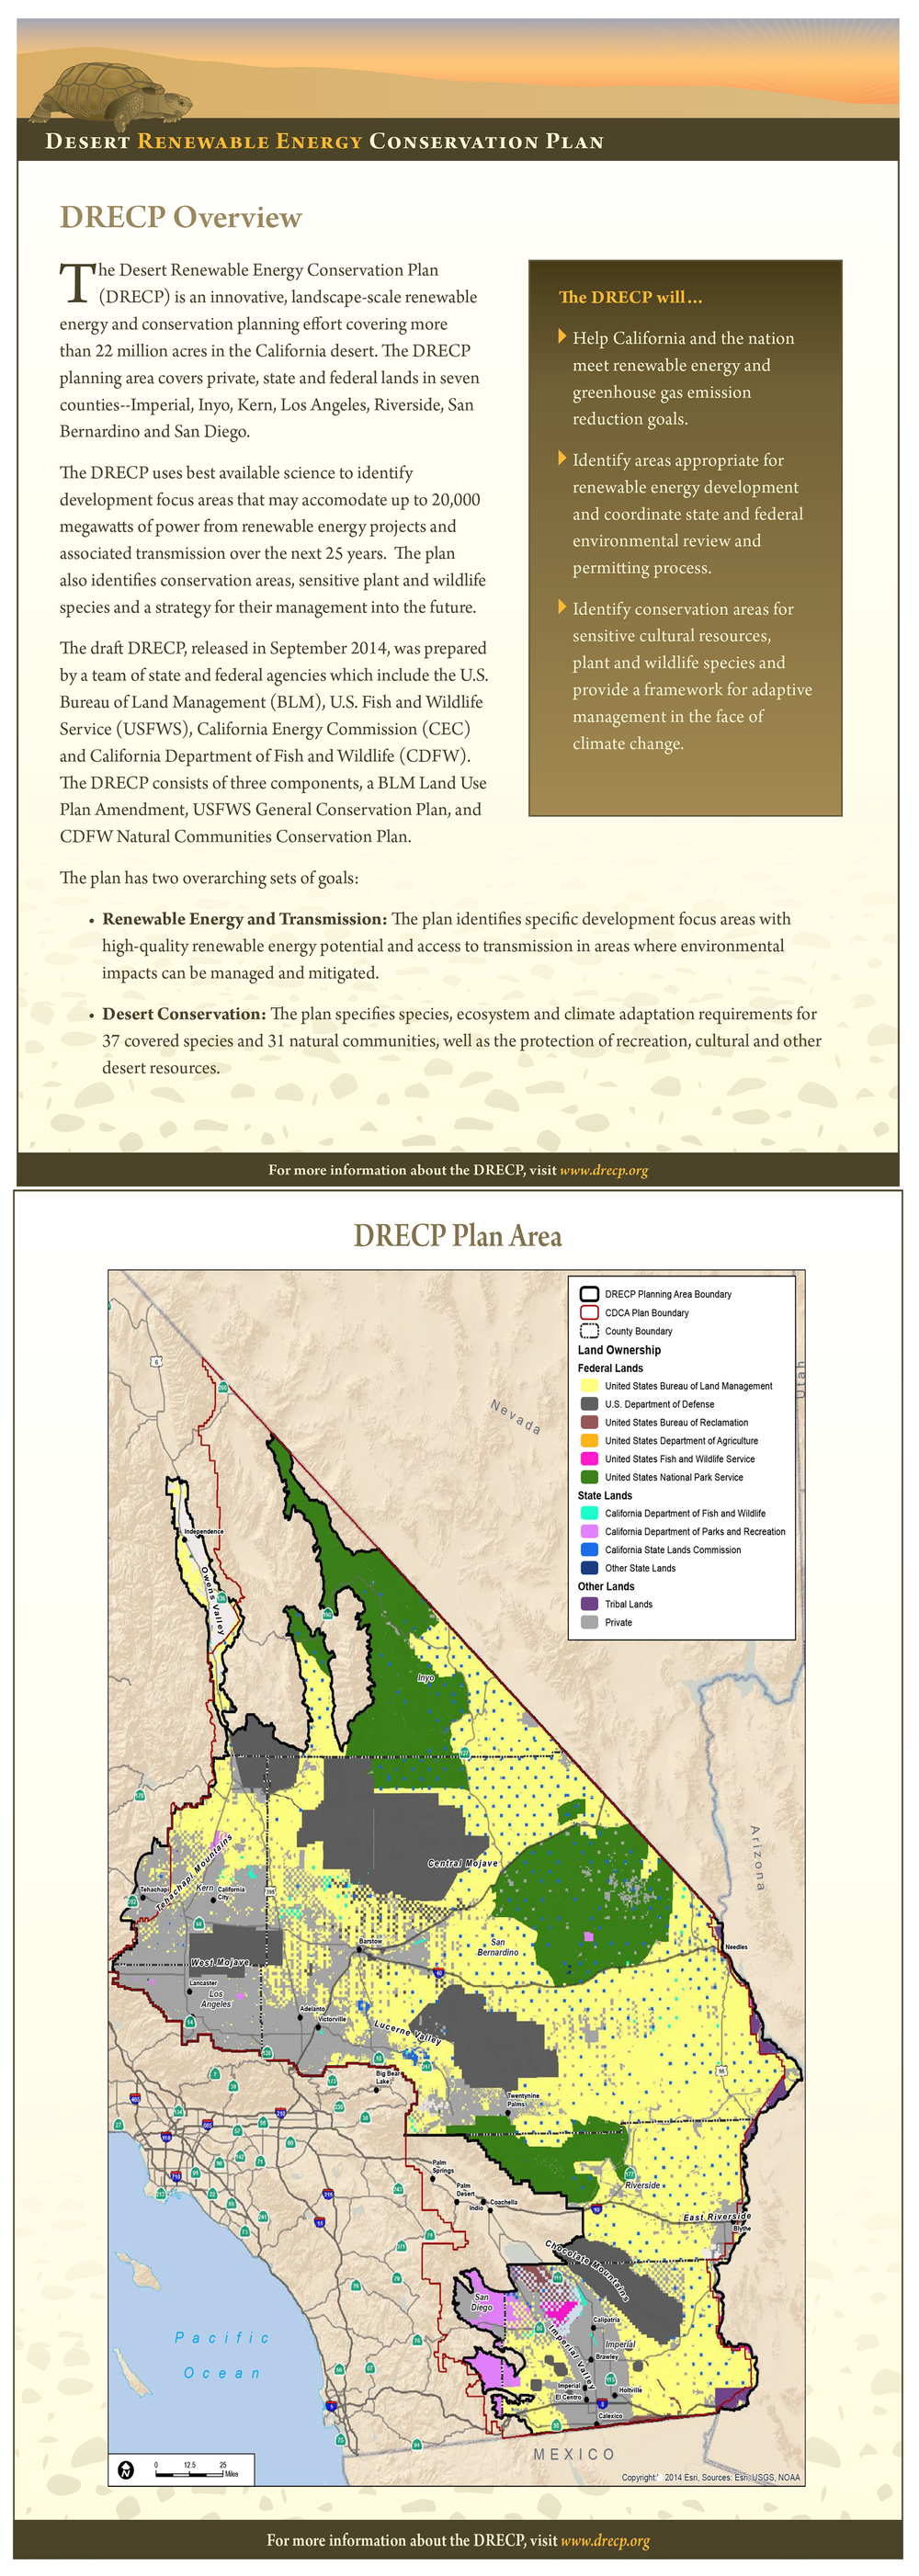 A two page overview the DRECP released of the 10,000 page report.